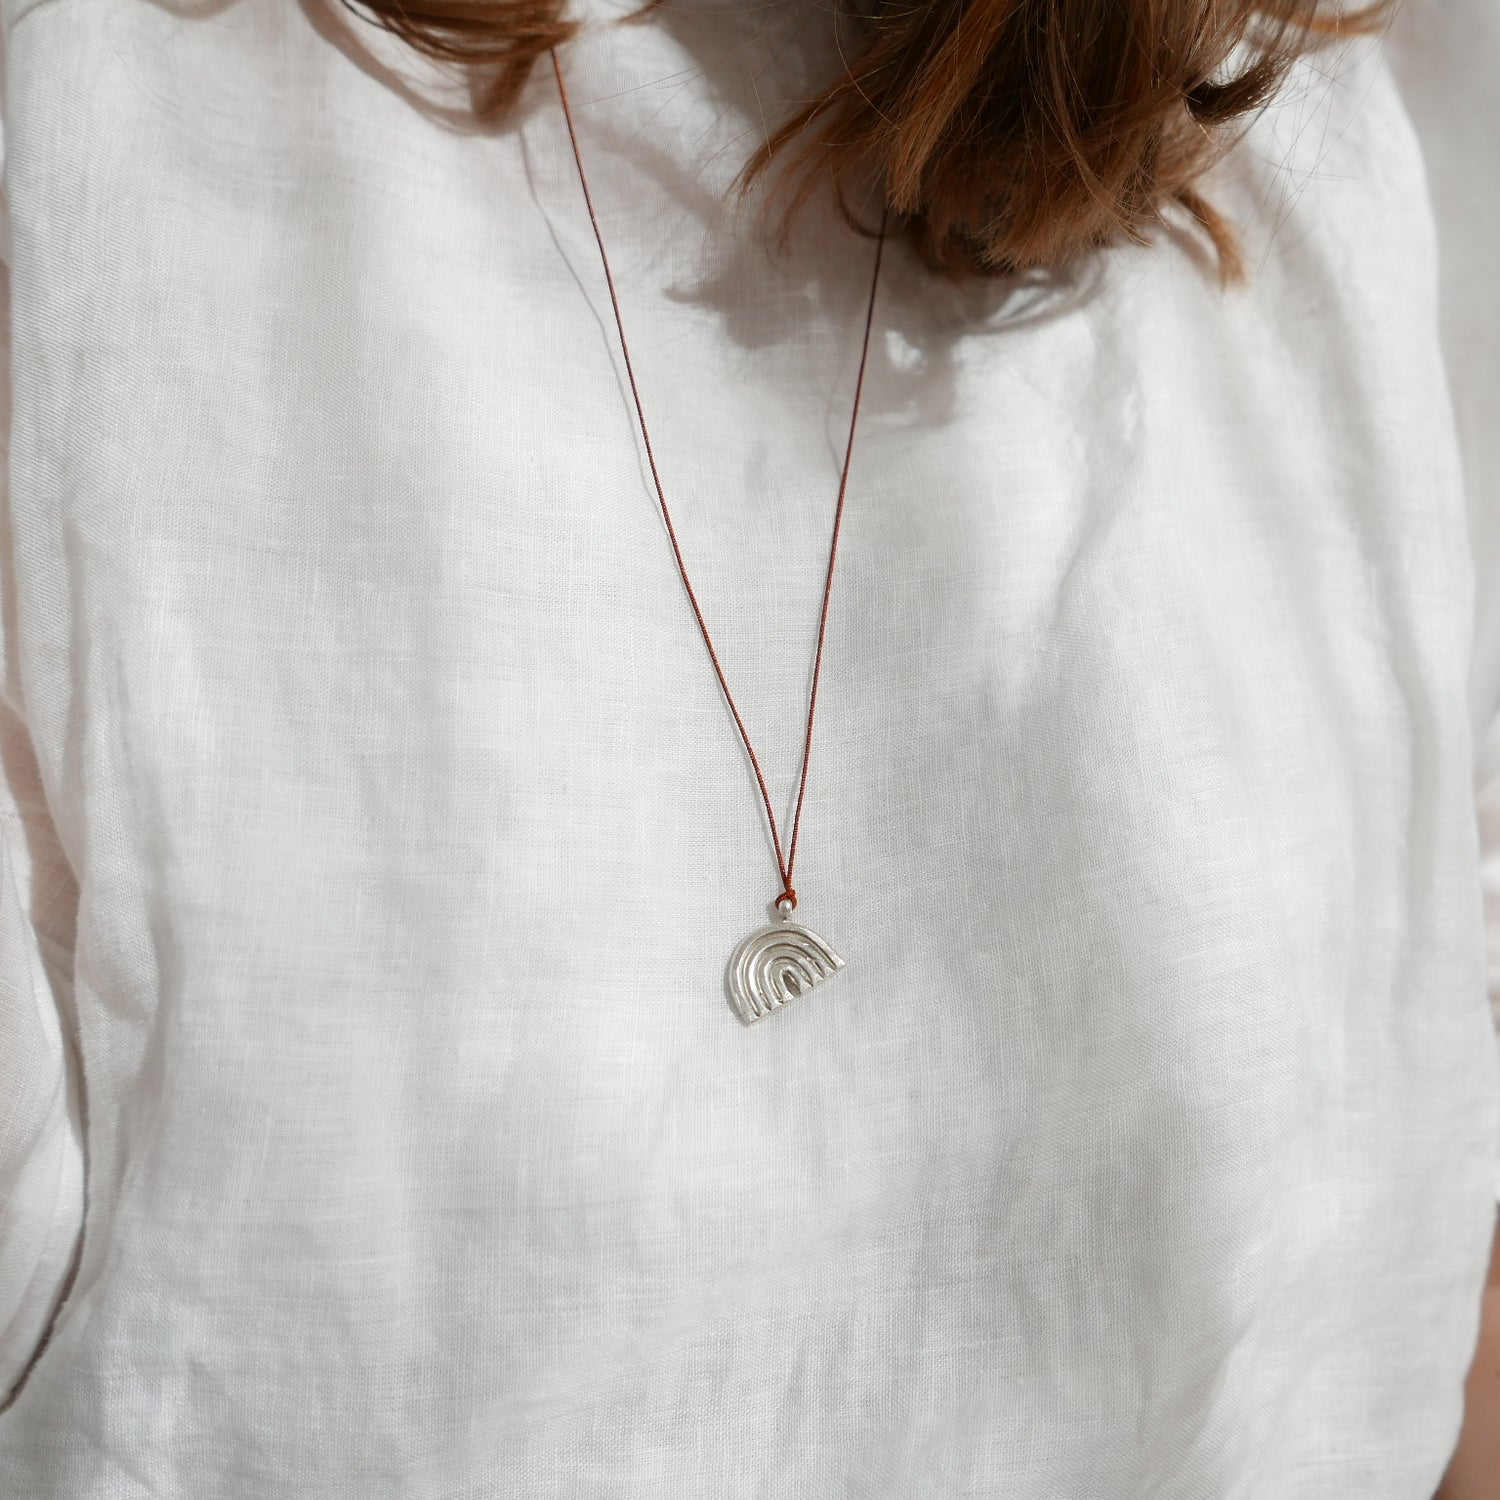 Image of Rainbow Charm Necklace - Silver + Brick